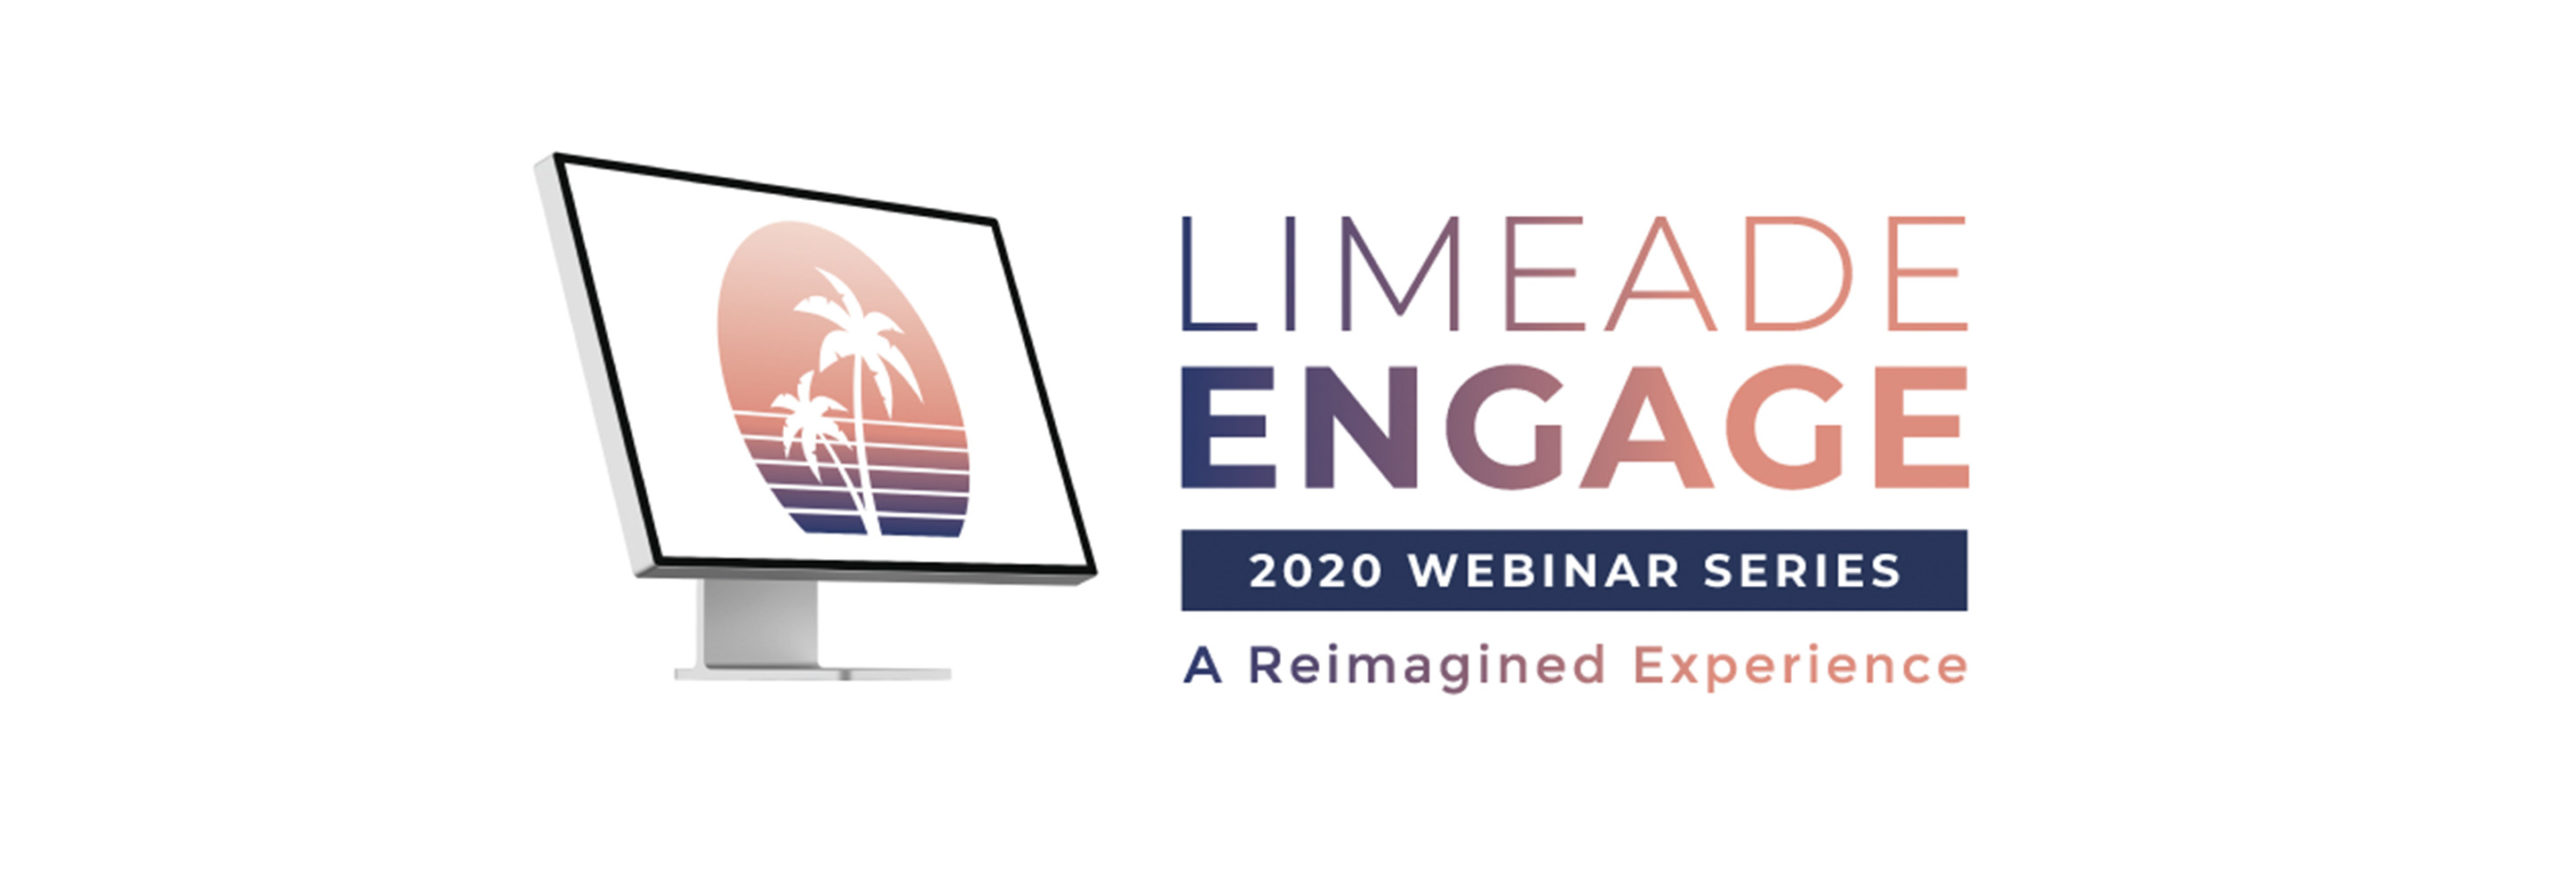 LimeadeEngageWebinarSeries2020 scaled - What You Missed in The Limeade Engage 2020 Webinar Series